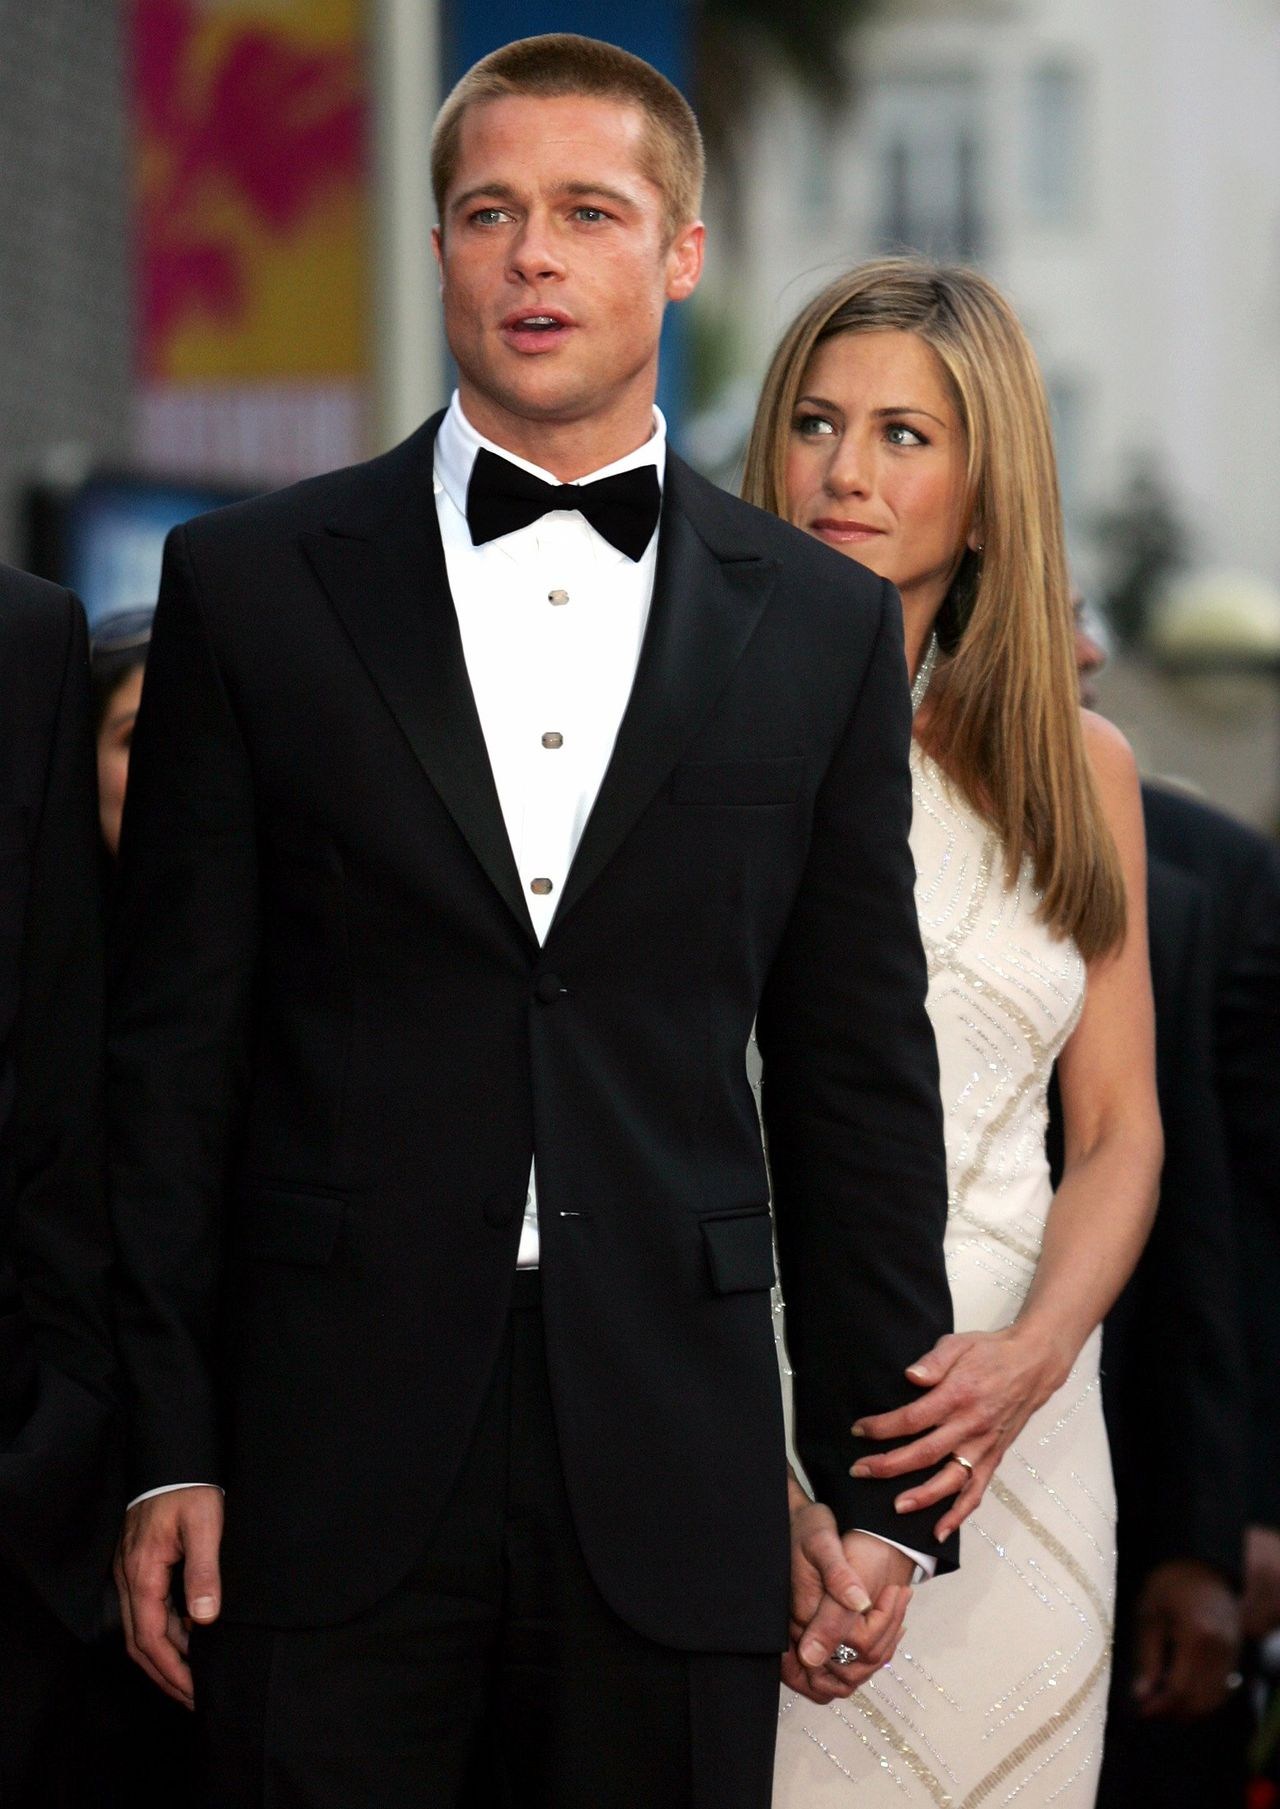 File photo of Brad Pitt and Jennifer Aniston at the 57th Cannes Film Festival